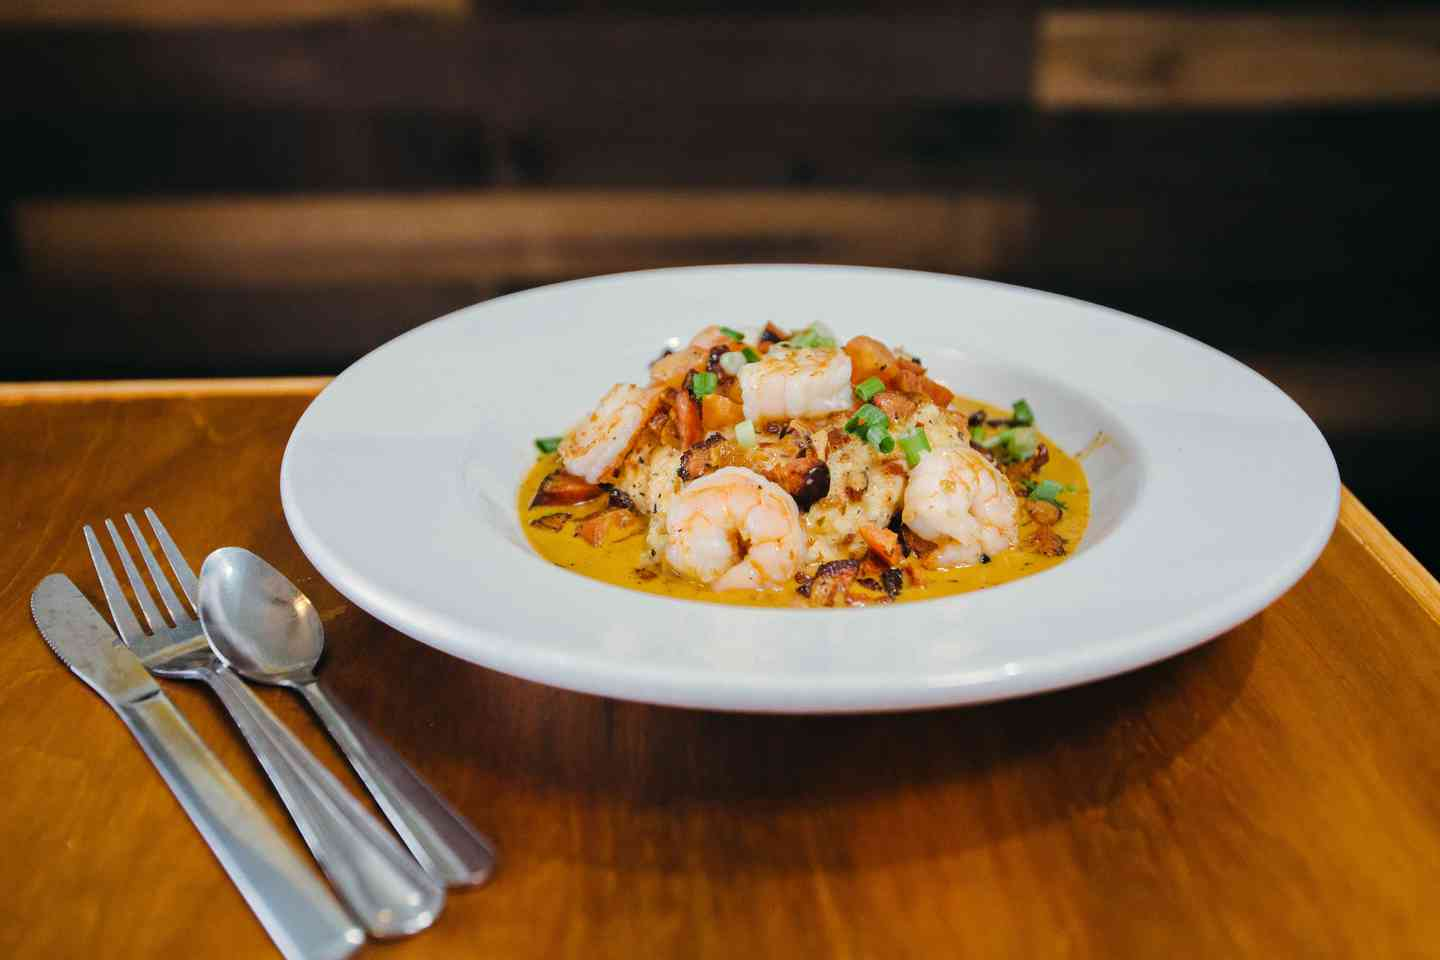 Tuesday - Shrimp and Grits